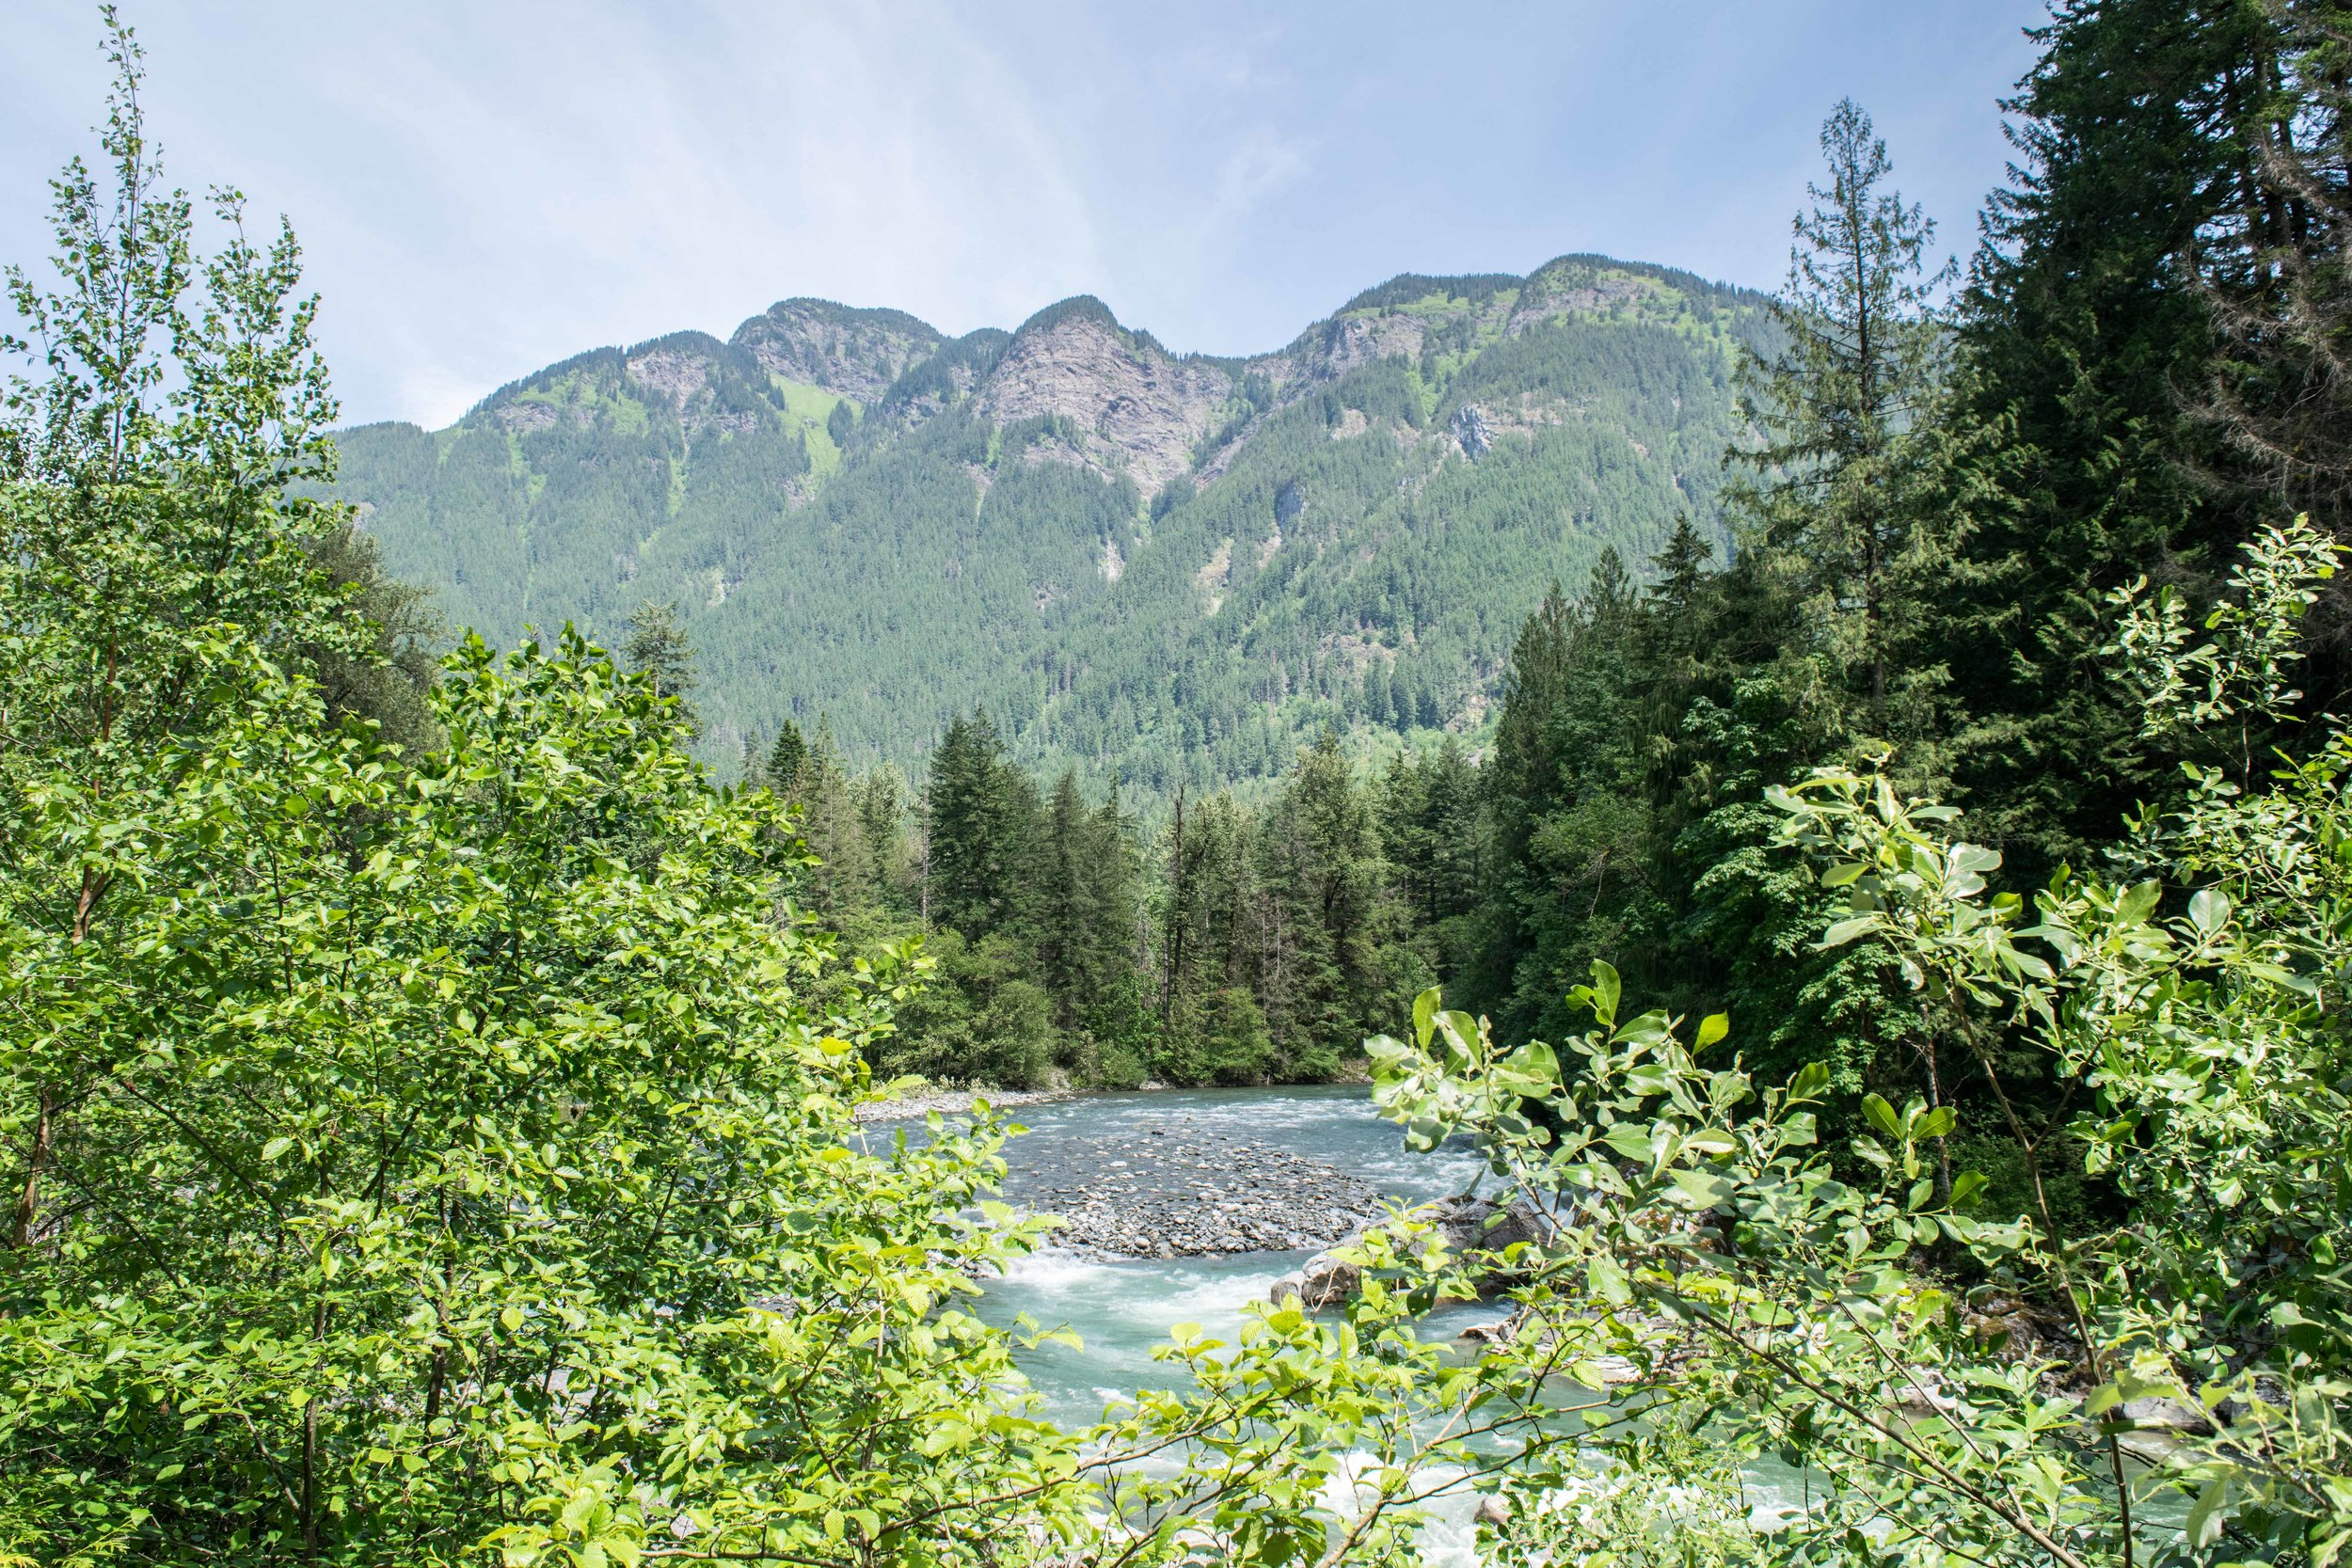 View of the Coquihalla River from the Tunnel Trail in Coquihalla Canyon Provincial Park